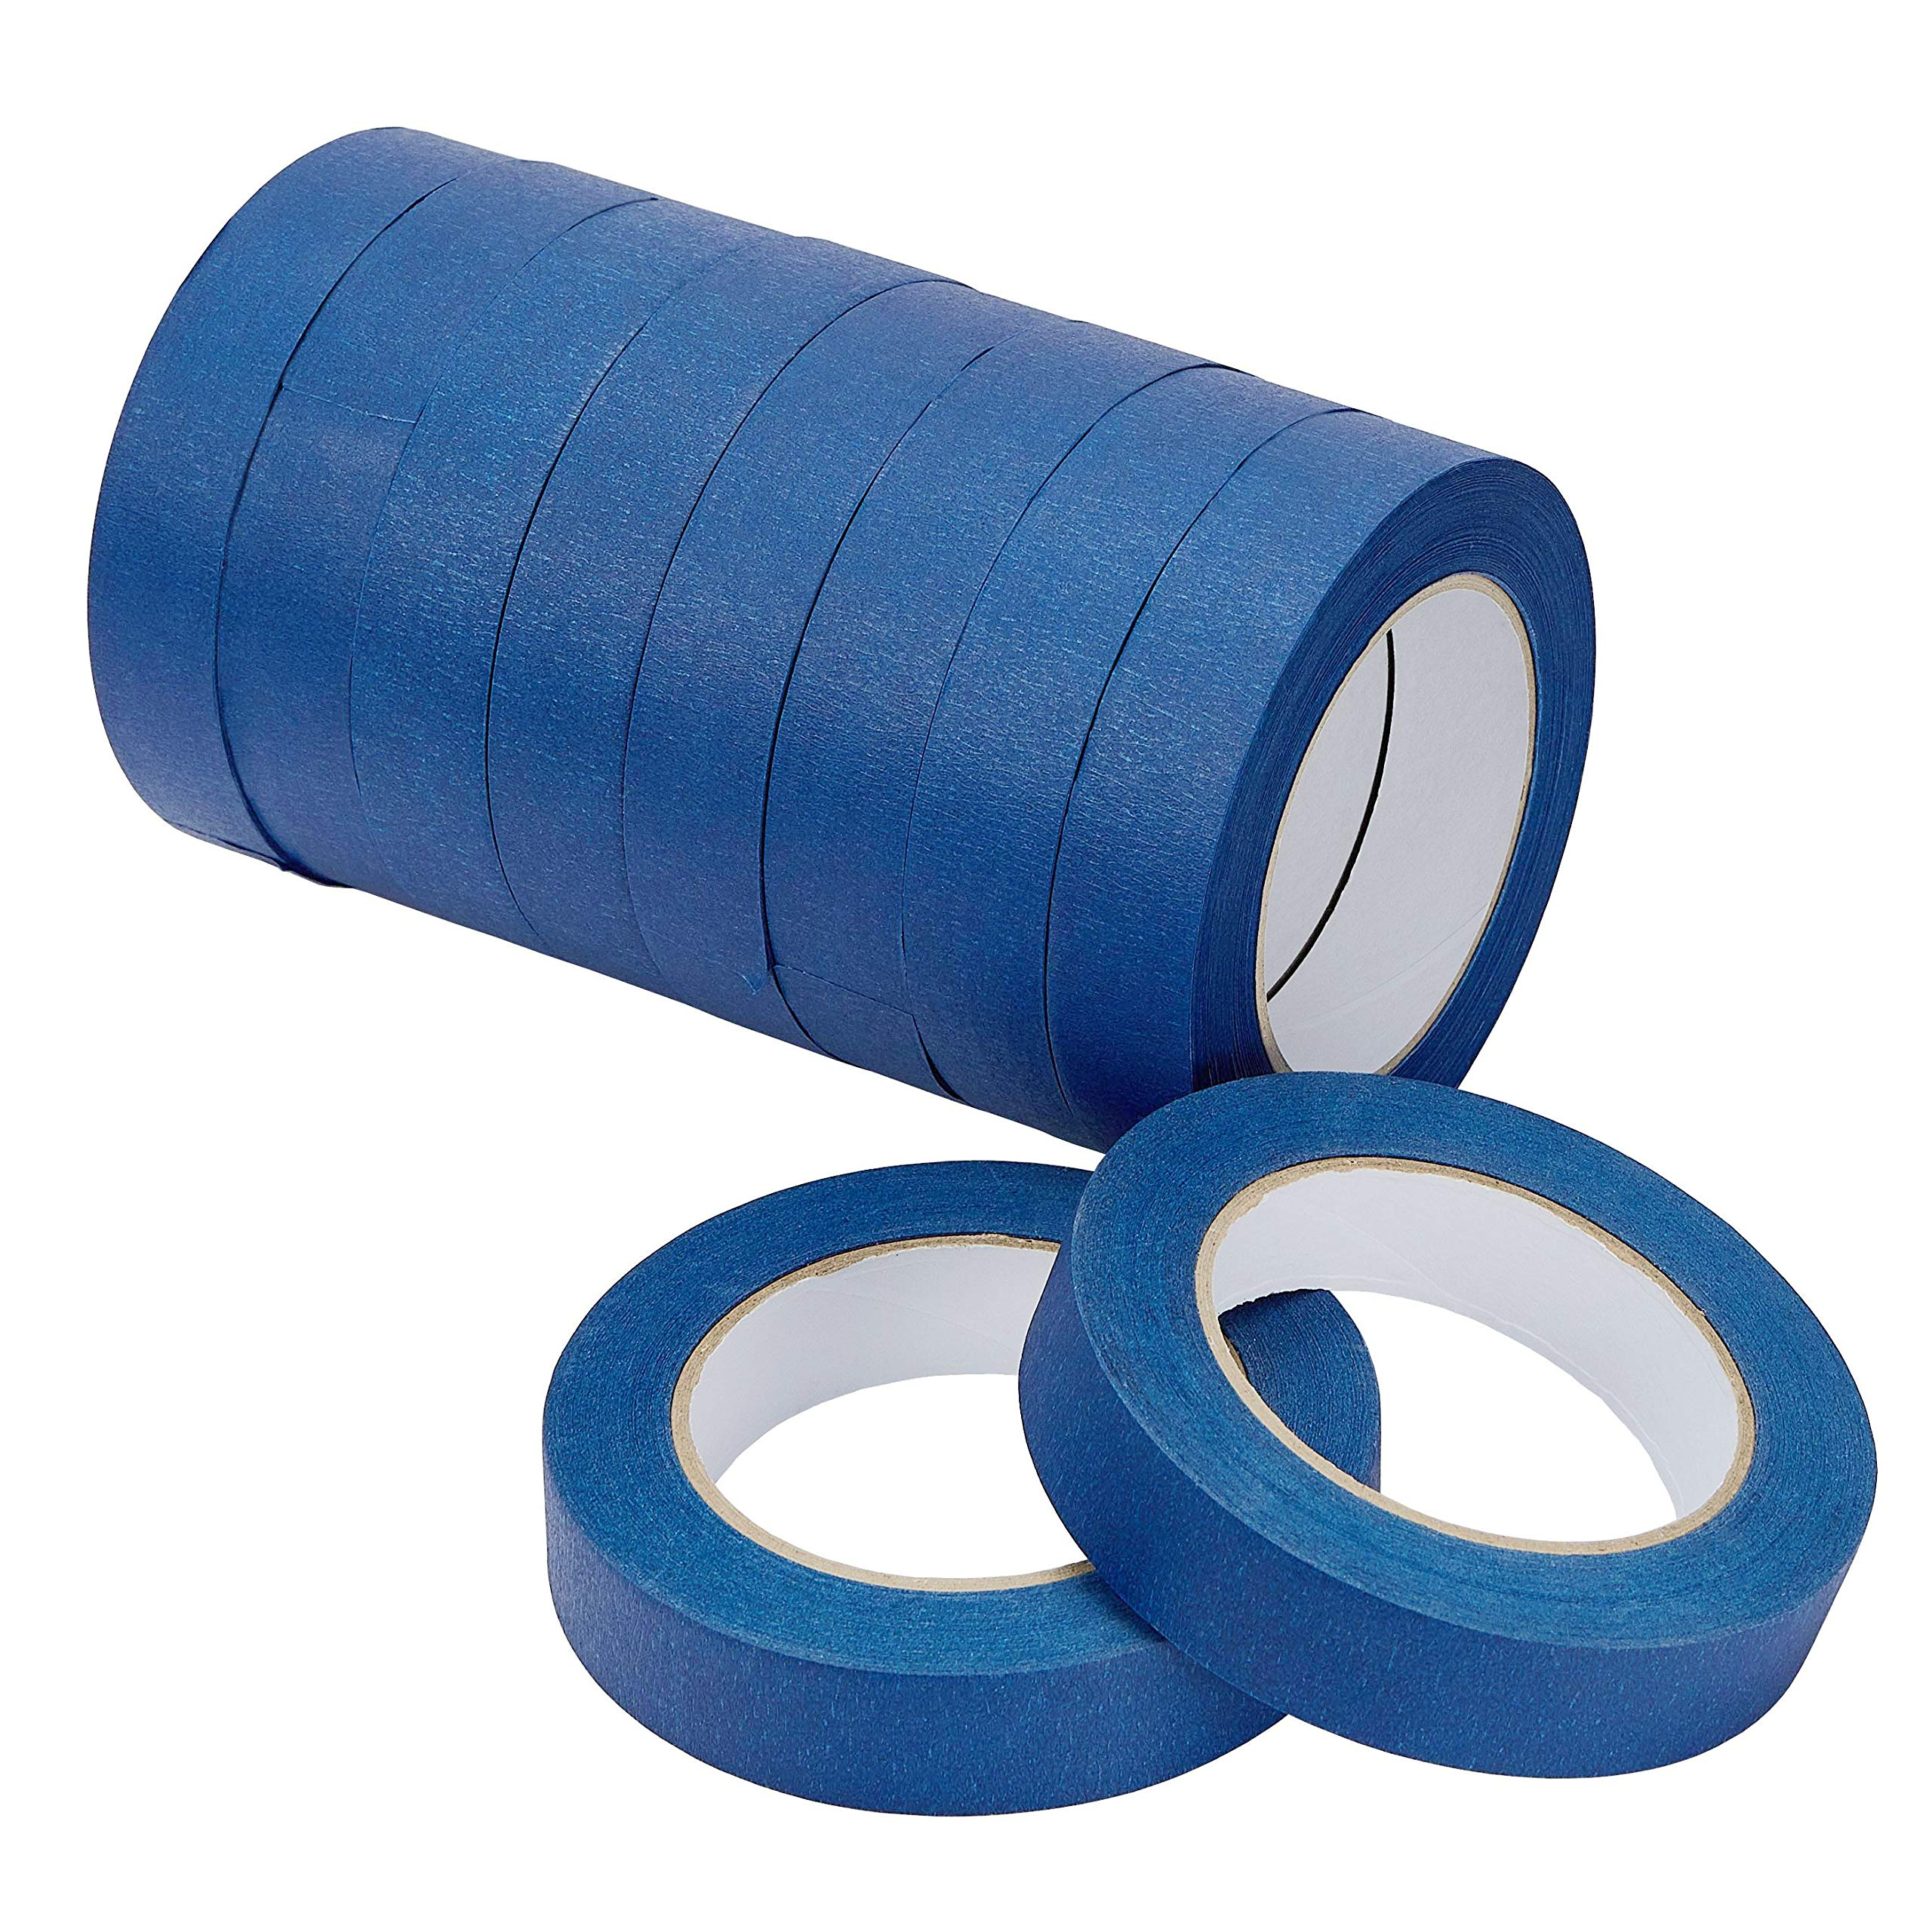 LICHAMP 10-Piece Blue Painters Tape 1 inch, Blue Masking Tape Bulk Multi Pack, 1 inch x 55 Yards x 10 Rolls (550 Total Yards) by Lichamp